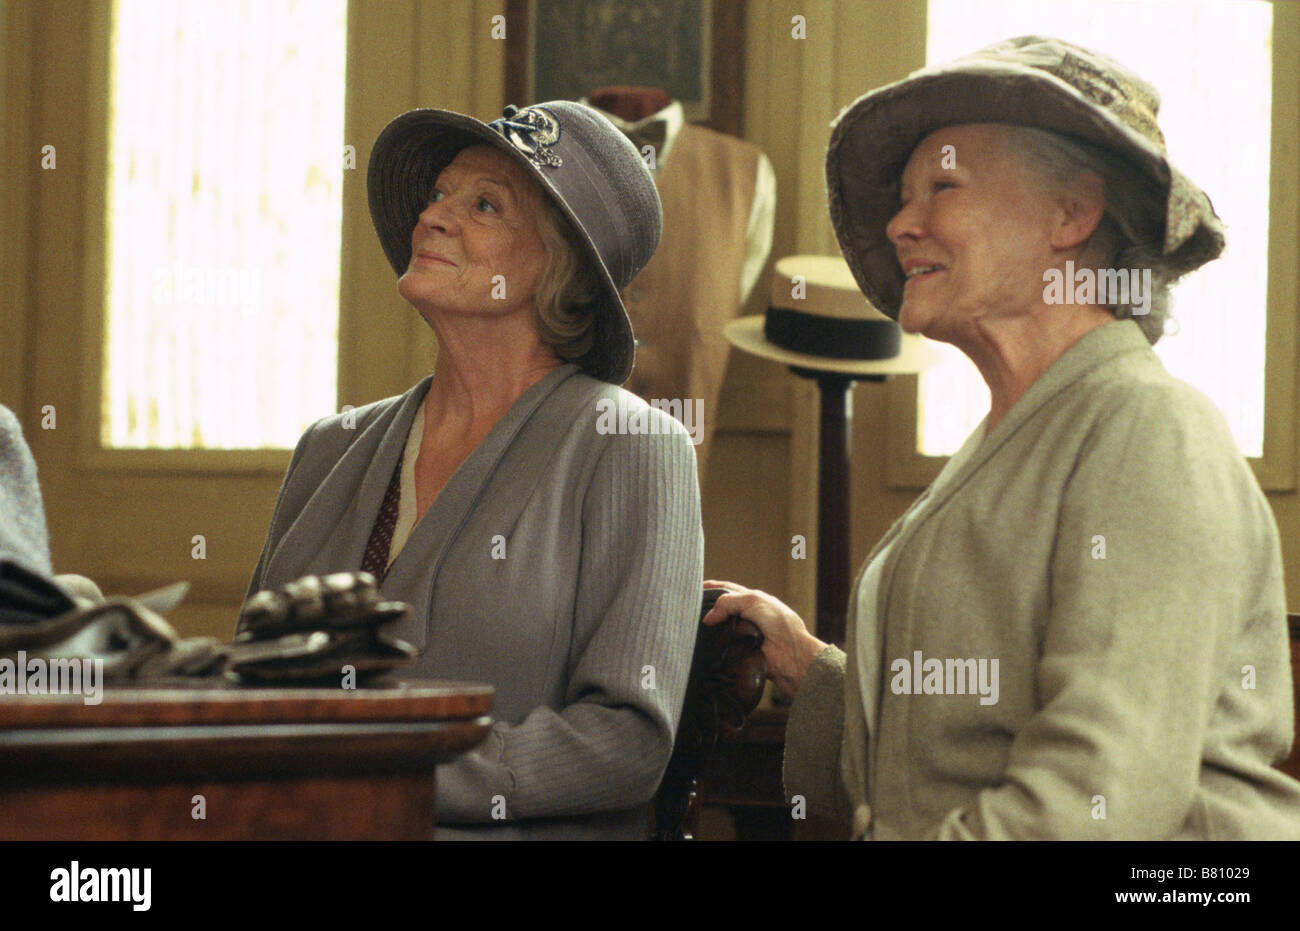 Les dames de Cornouailles Ladies in lavender  Year: 2005 - UK Maggie Smith, Natascha McElhone  Director: Charles Dance Stock Photo